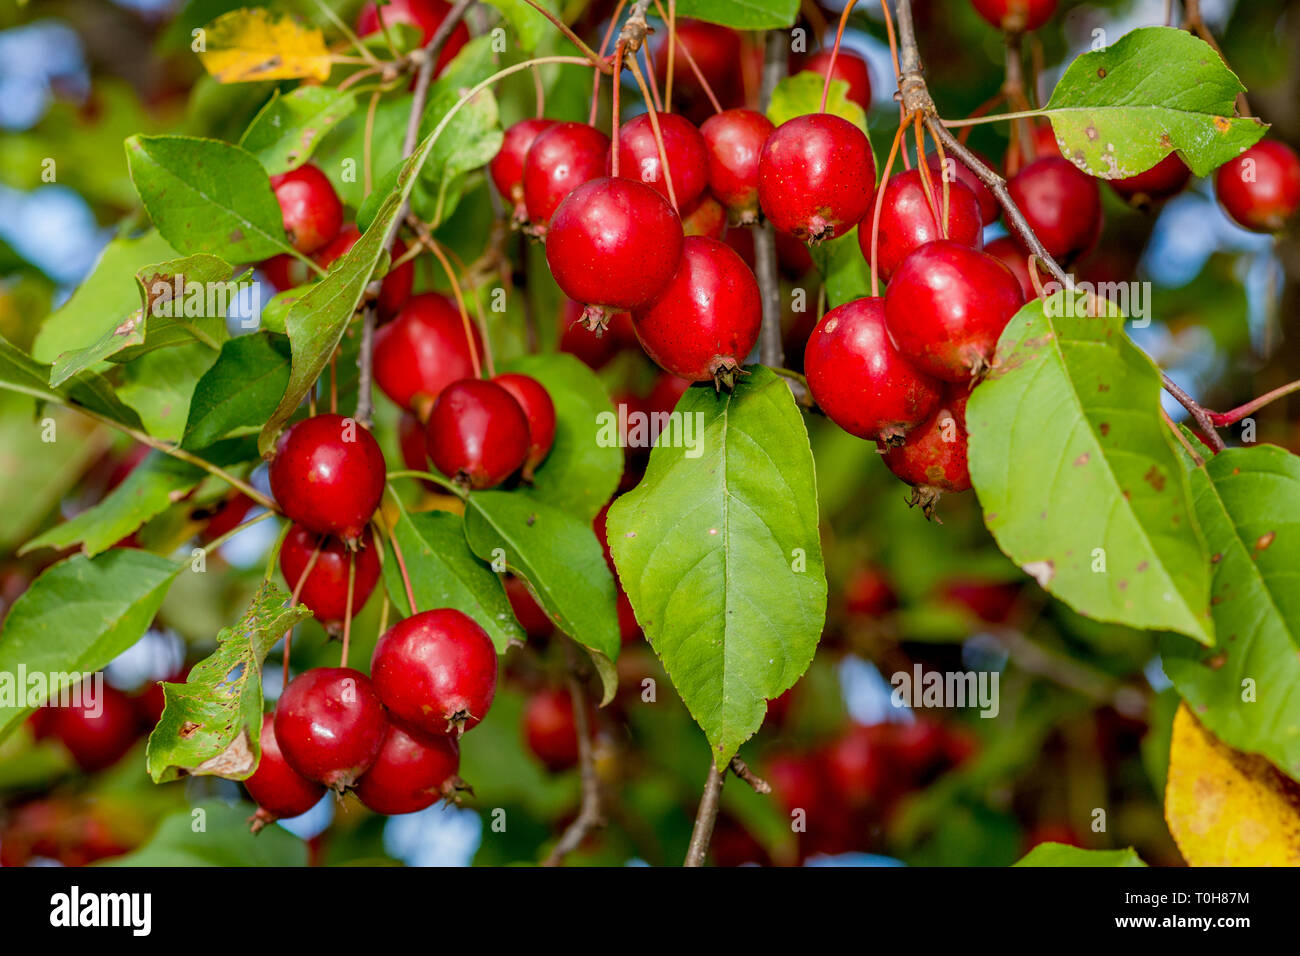 Ripe, red crabapples, crab apples, Malus, hang on an apple tree in orchard in New Hampshire, USA. Stock Photo